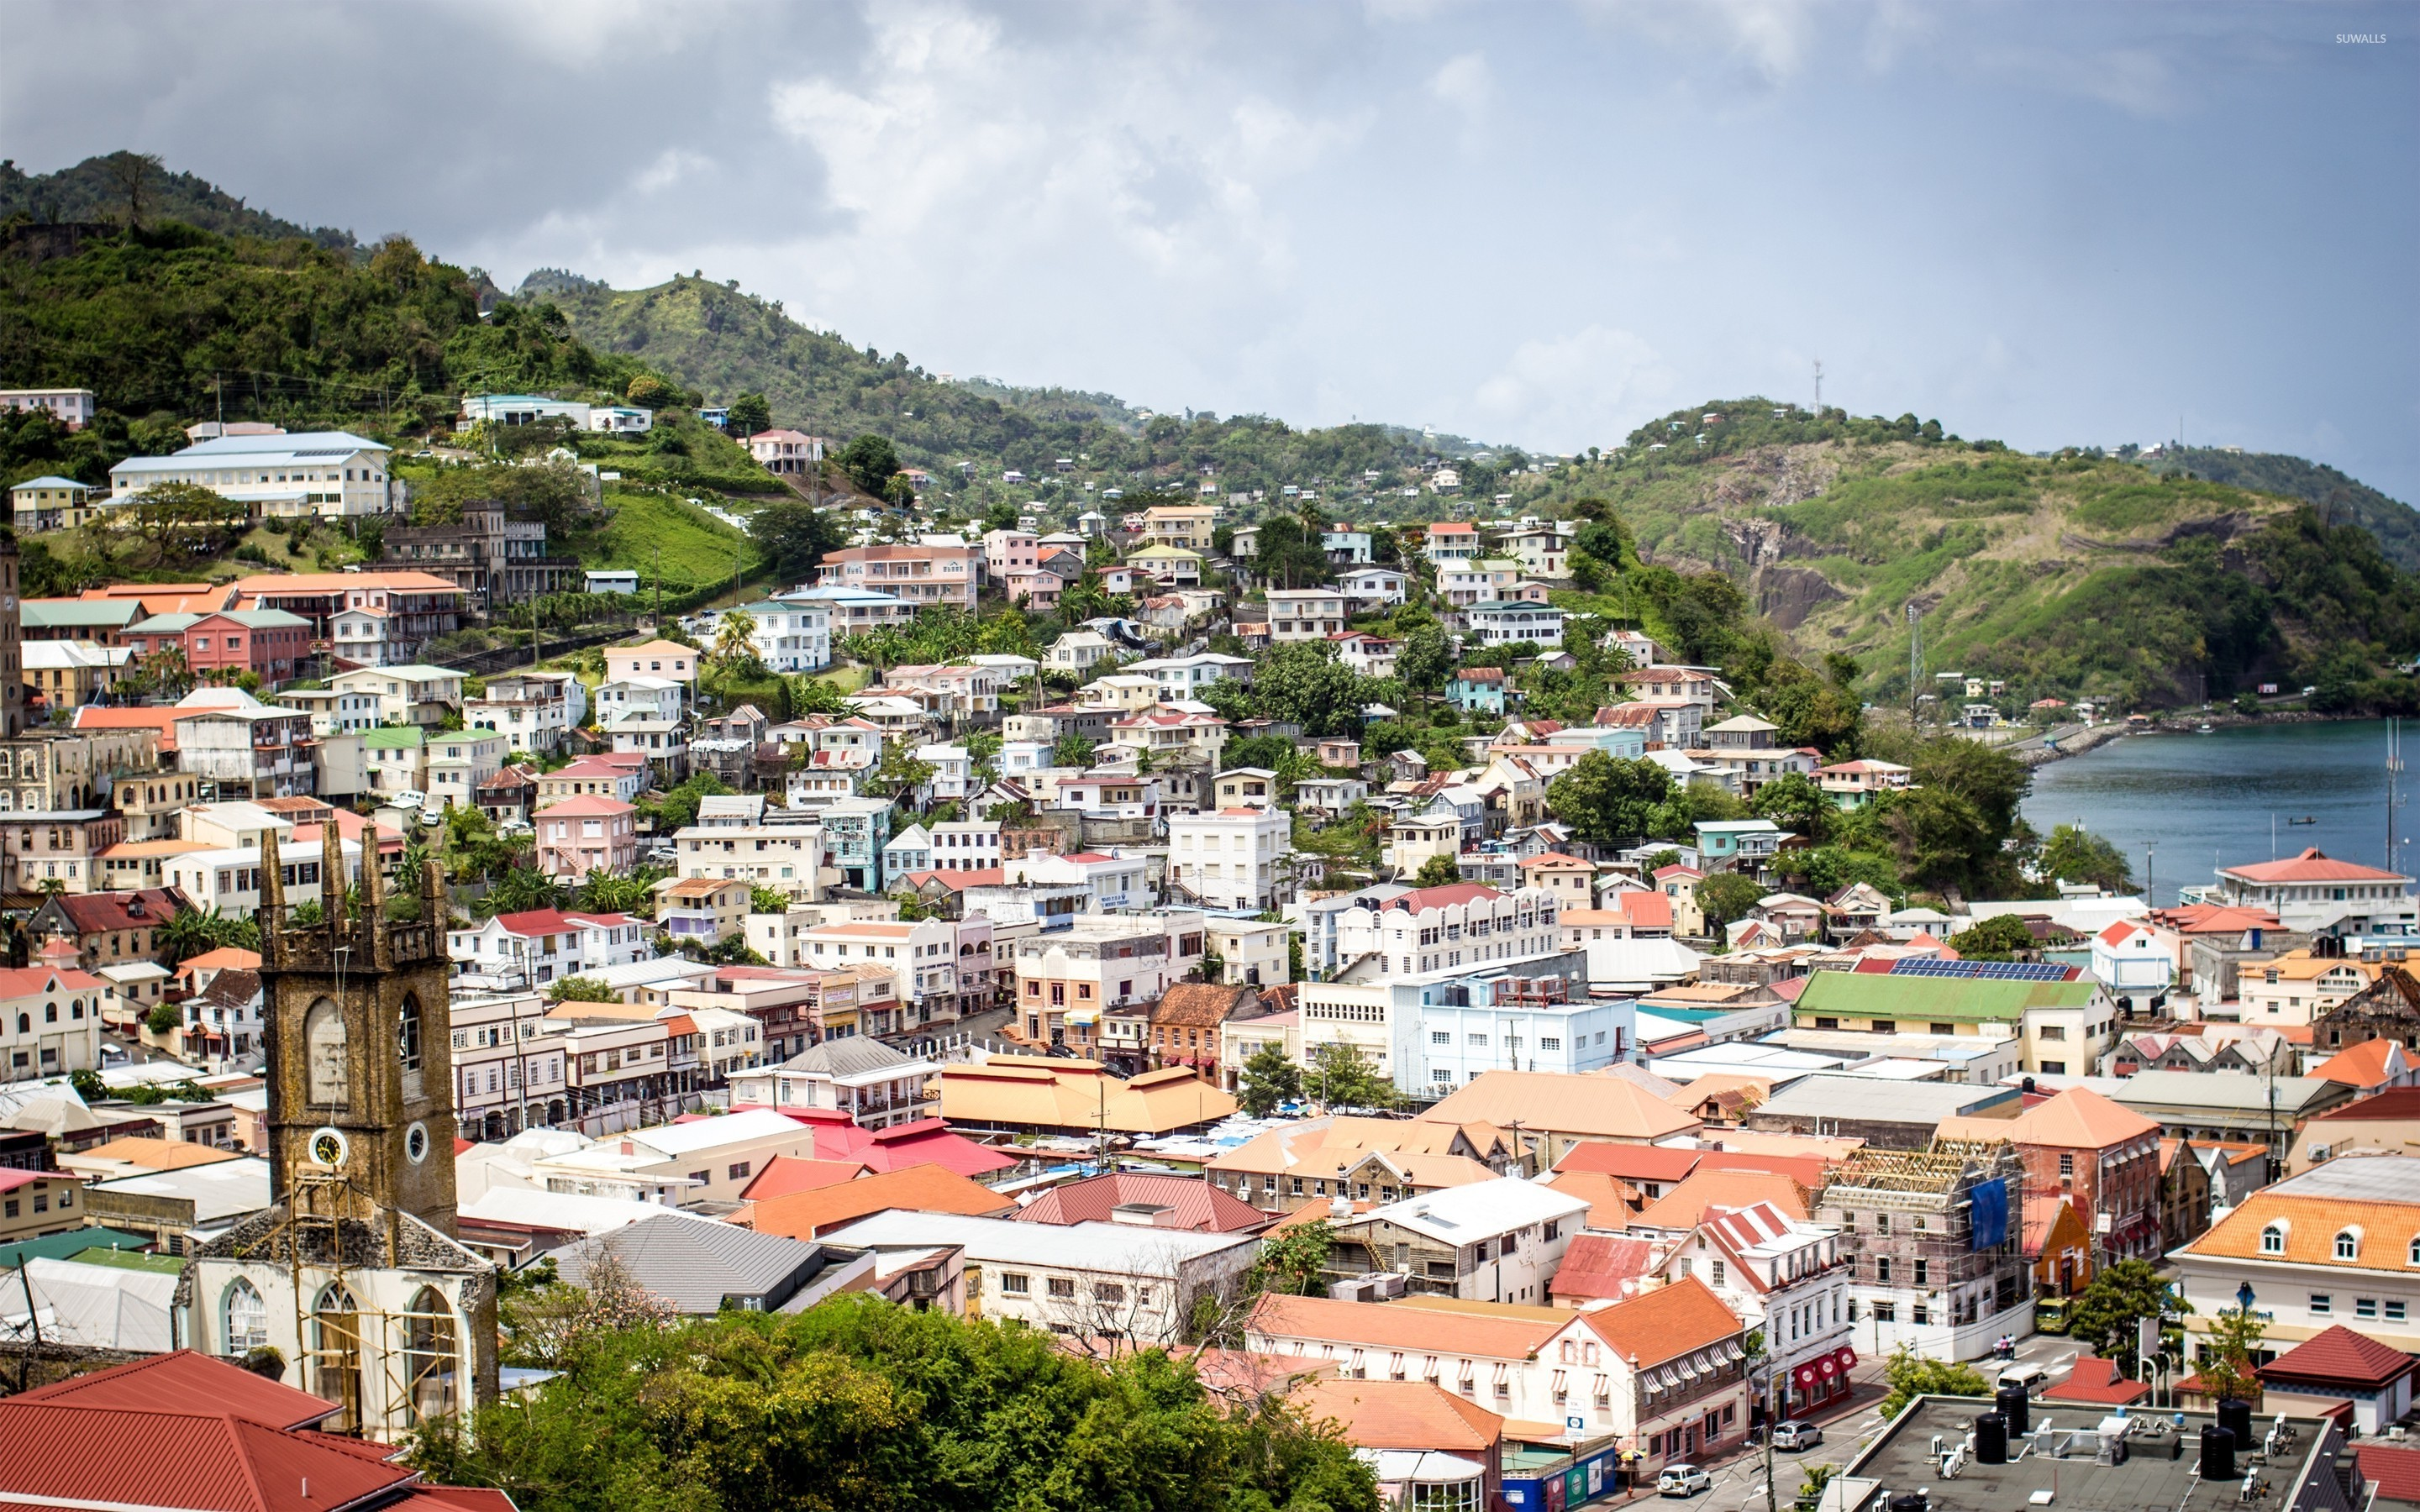 St Georges capital of Grenada wallpaper   World wallpapers   47494 1366x768